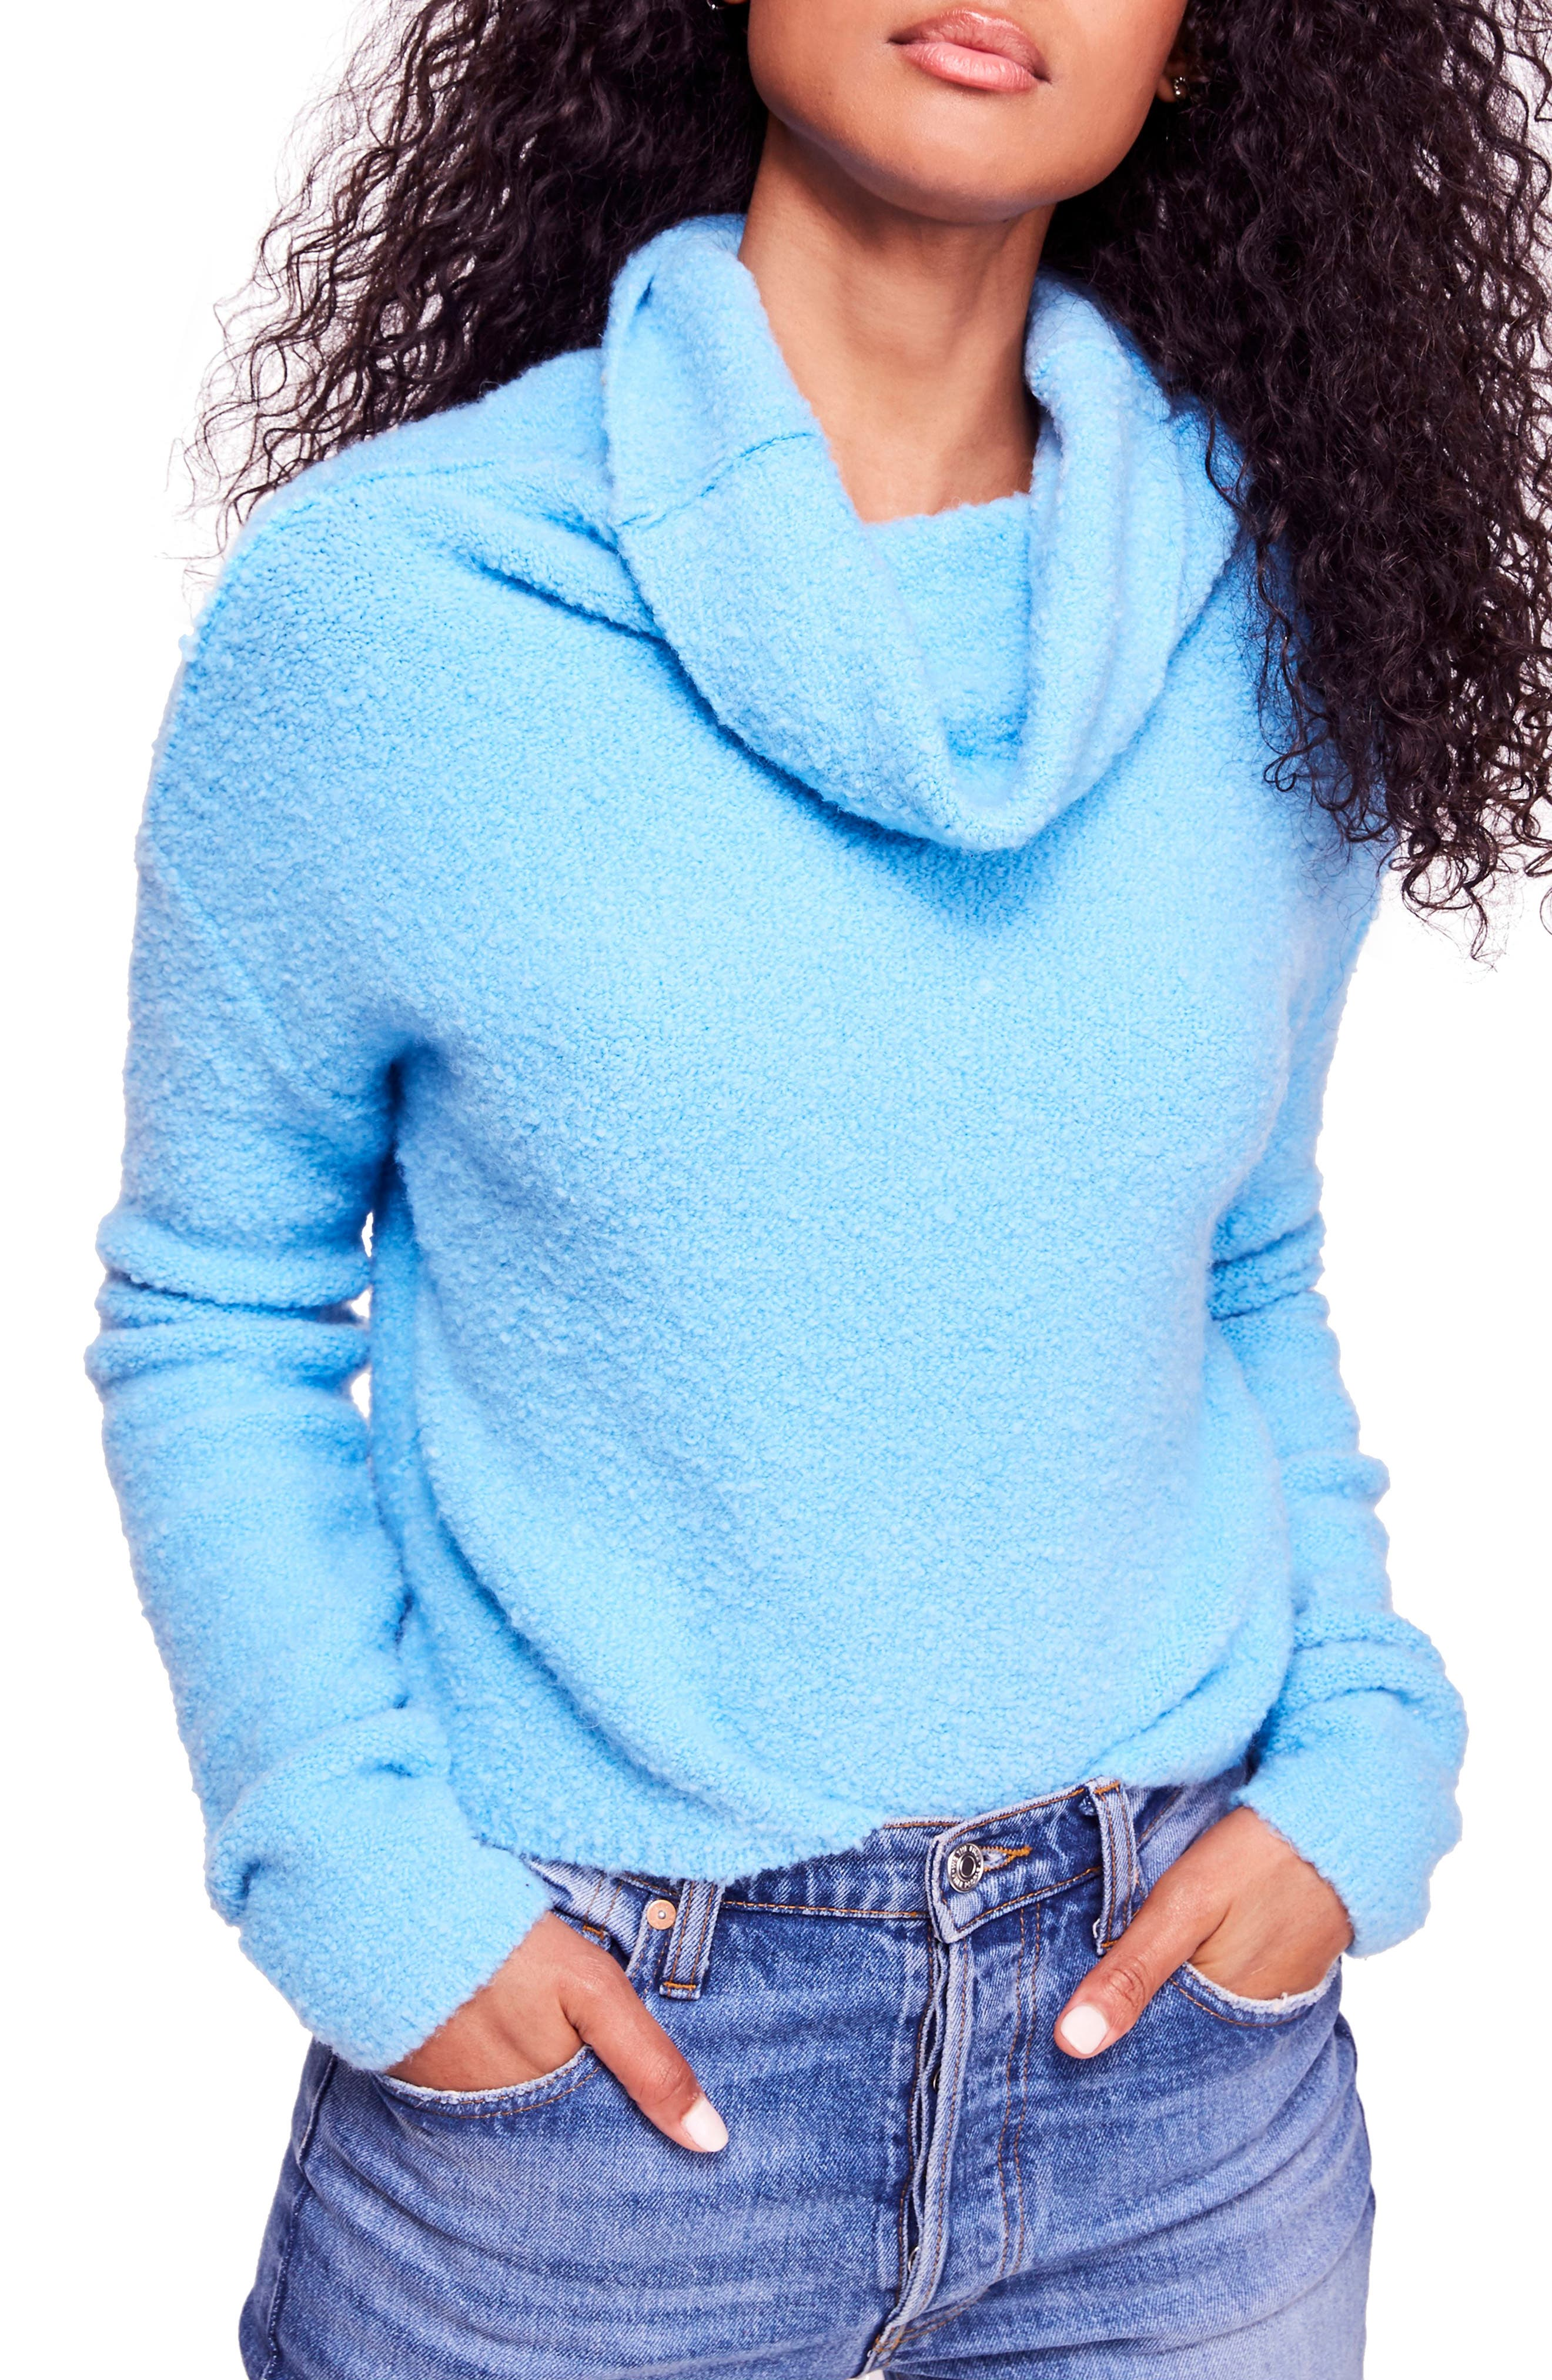 Stormy Cowl Neck Sweater,                             Main thumbnail 1, color,                             BLUE